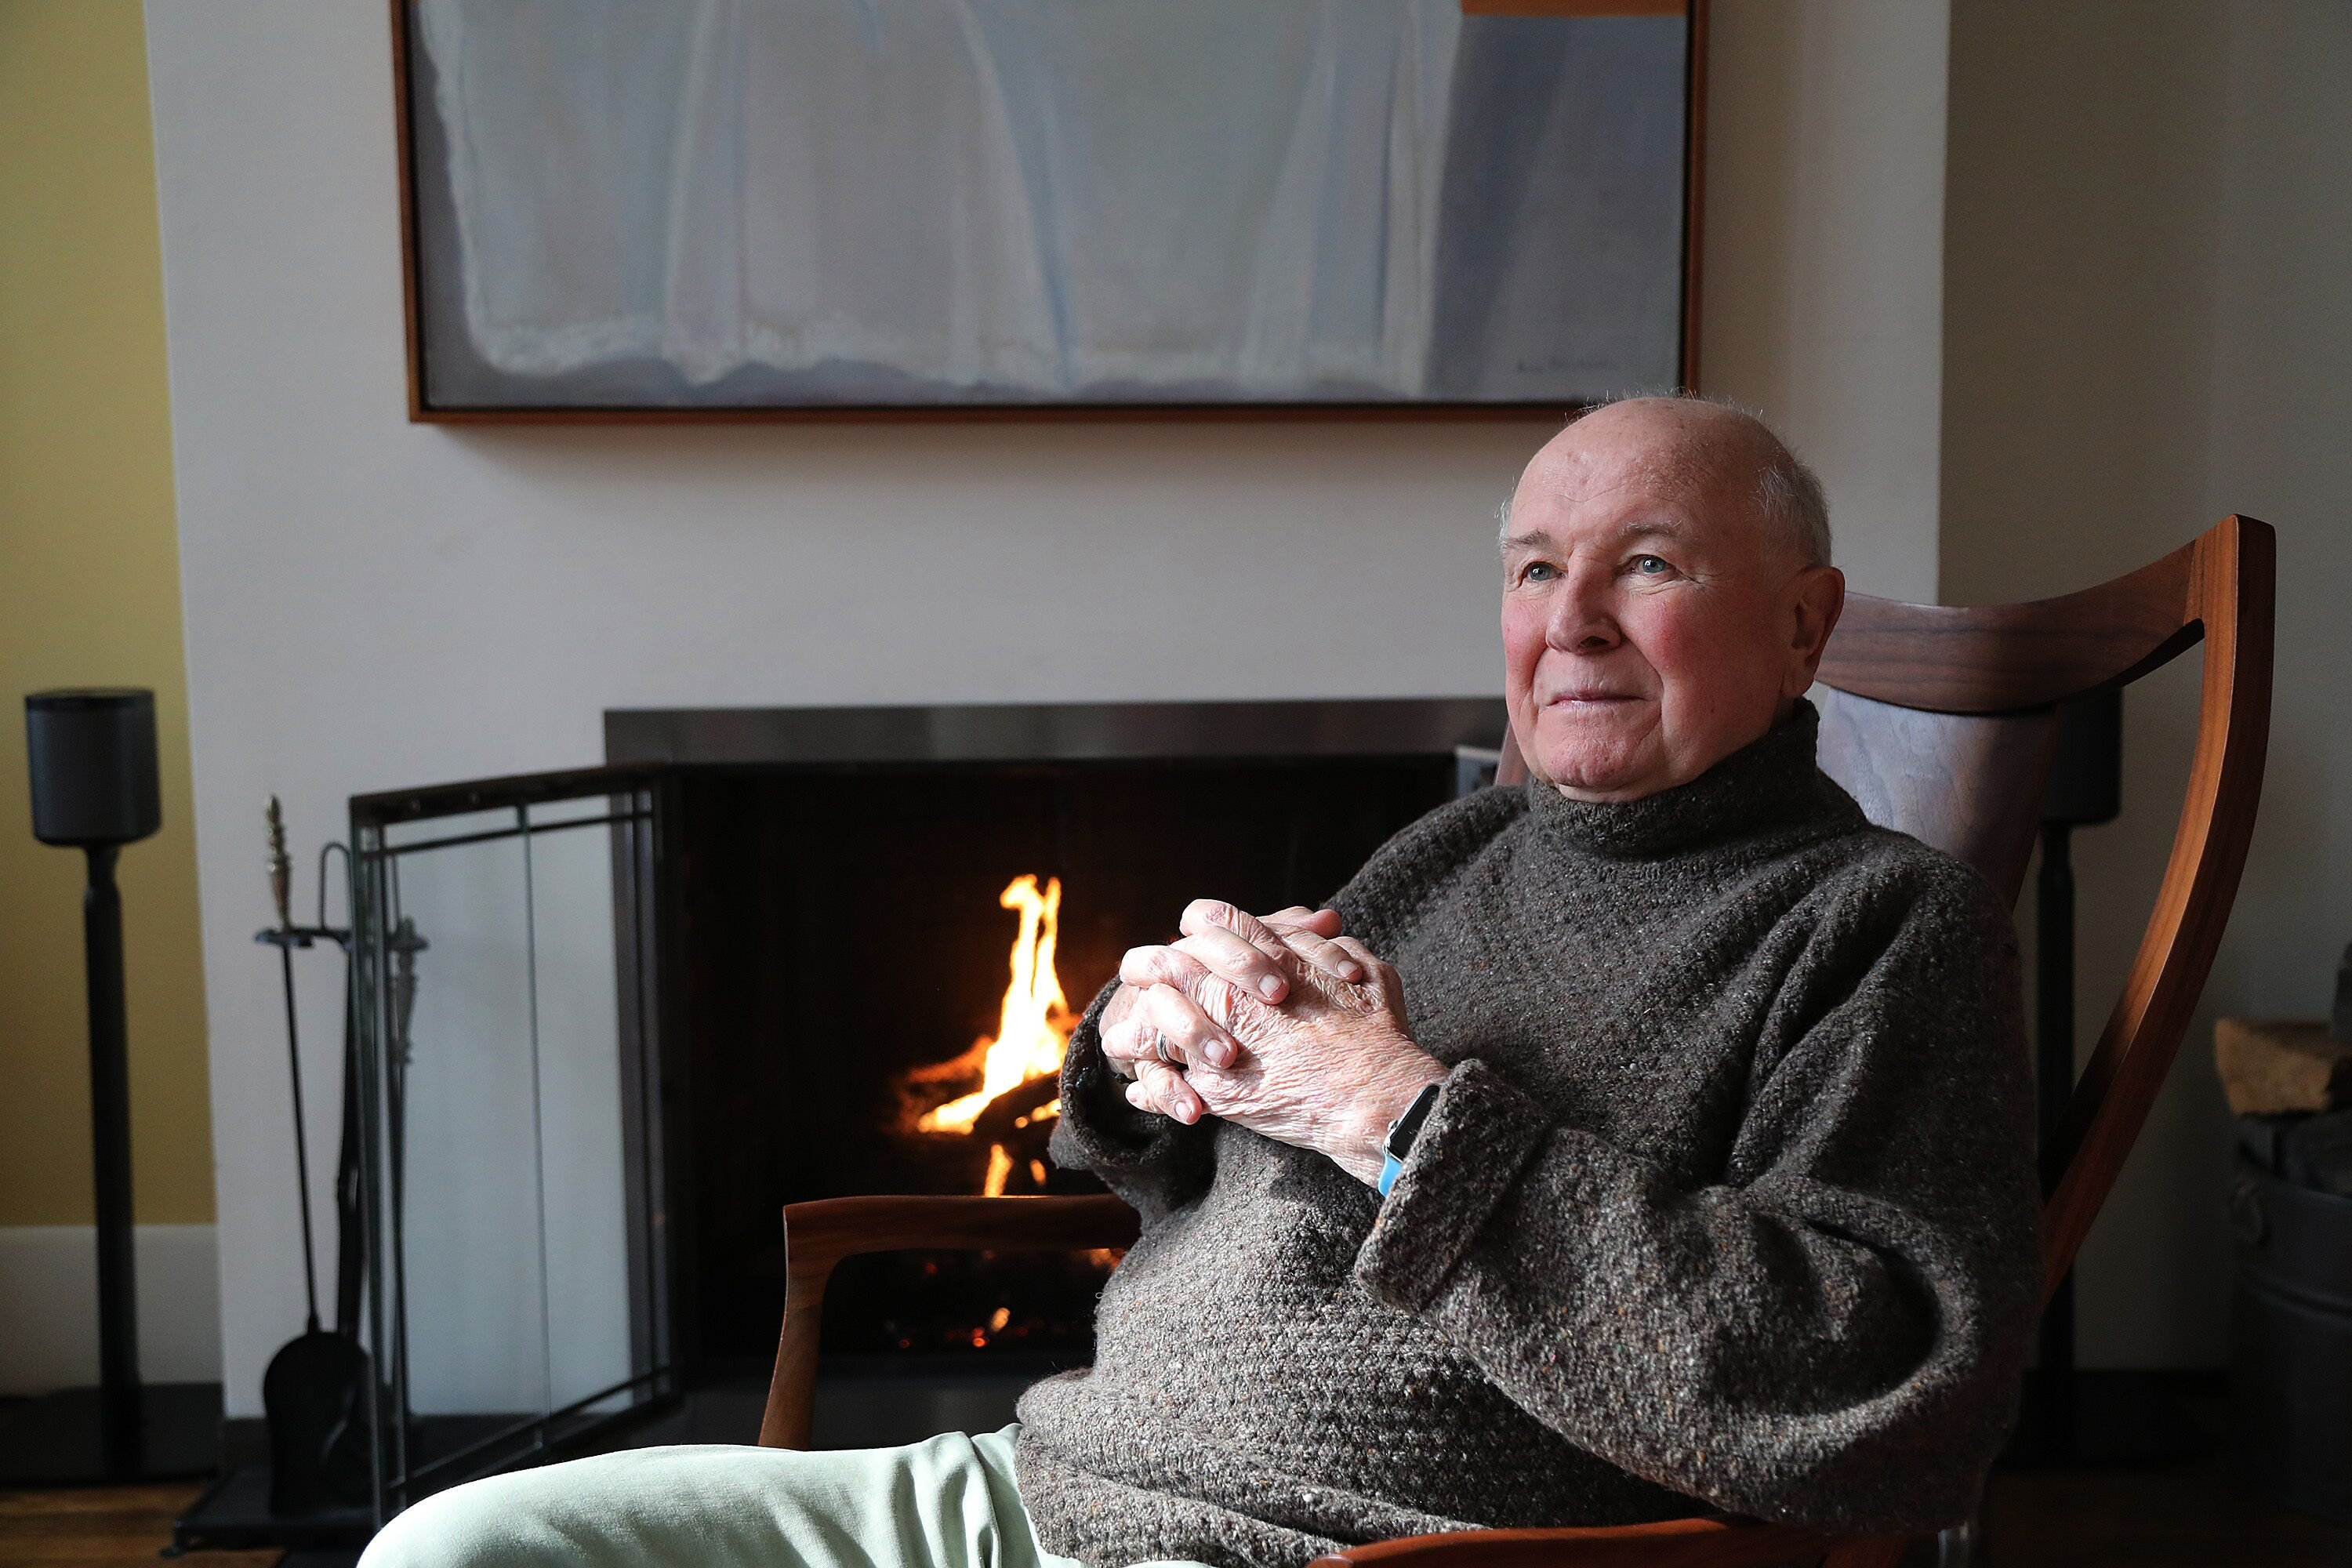 Terrence McNally appears in a portrait taken in his home on March 2, 2020, in New York City | Photo:Al Pereira/Getty Images